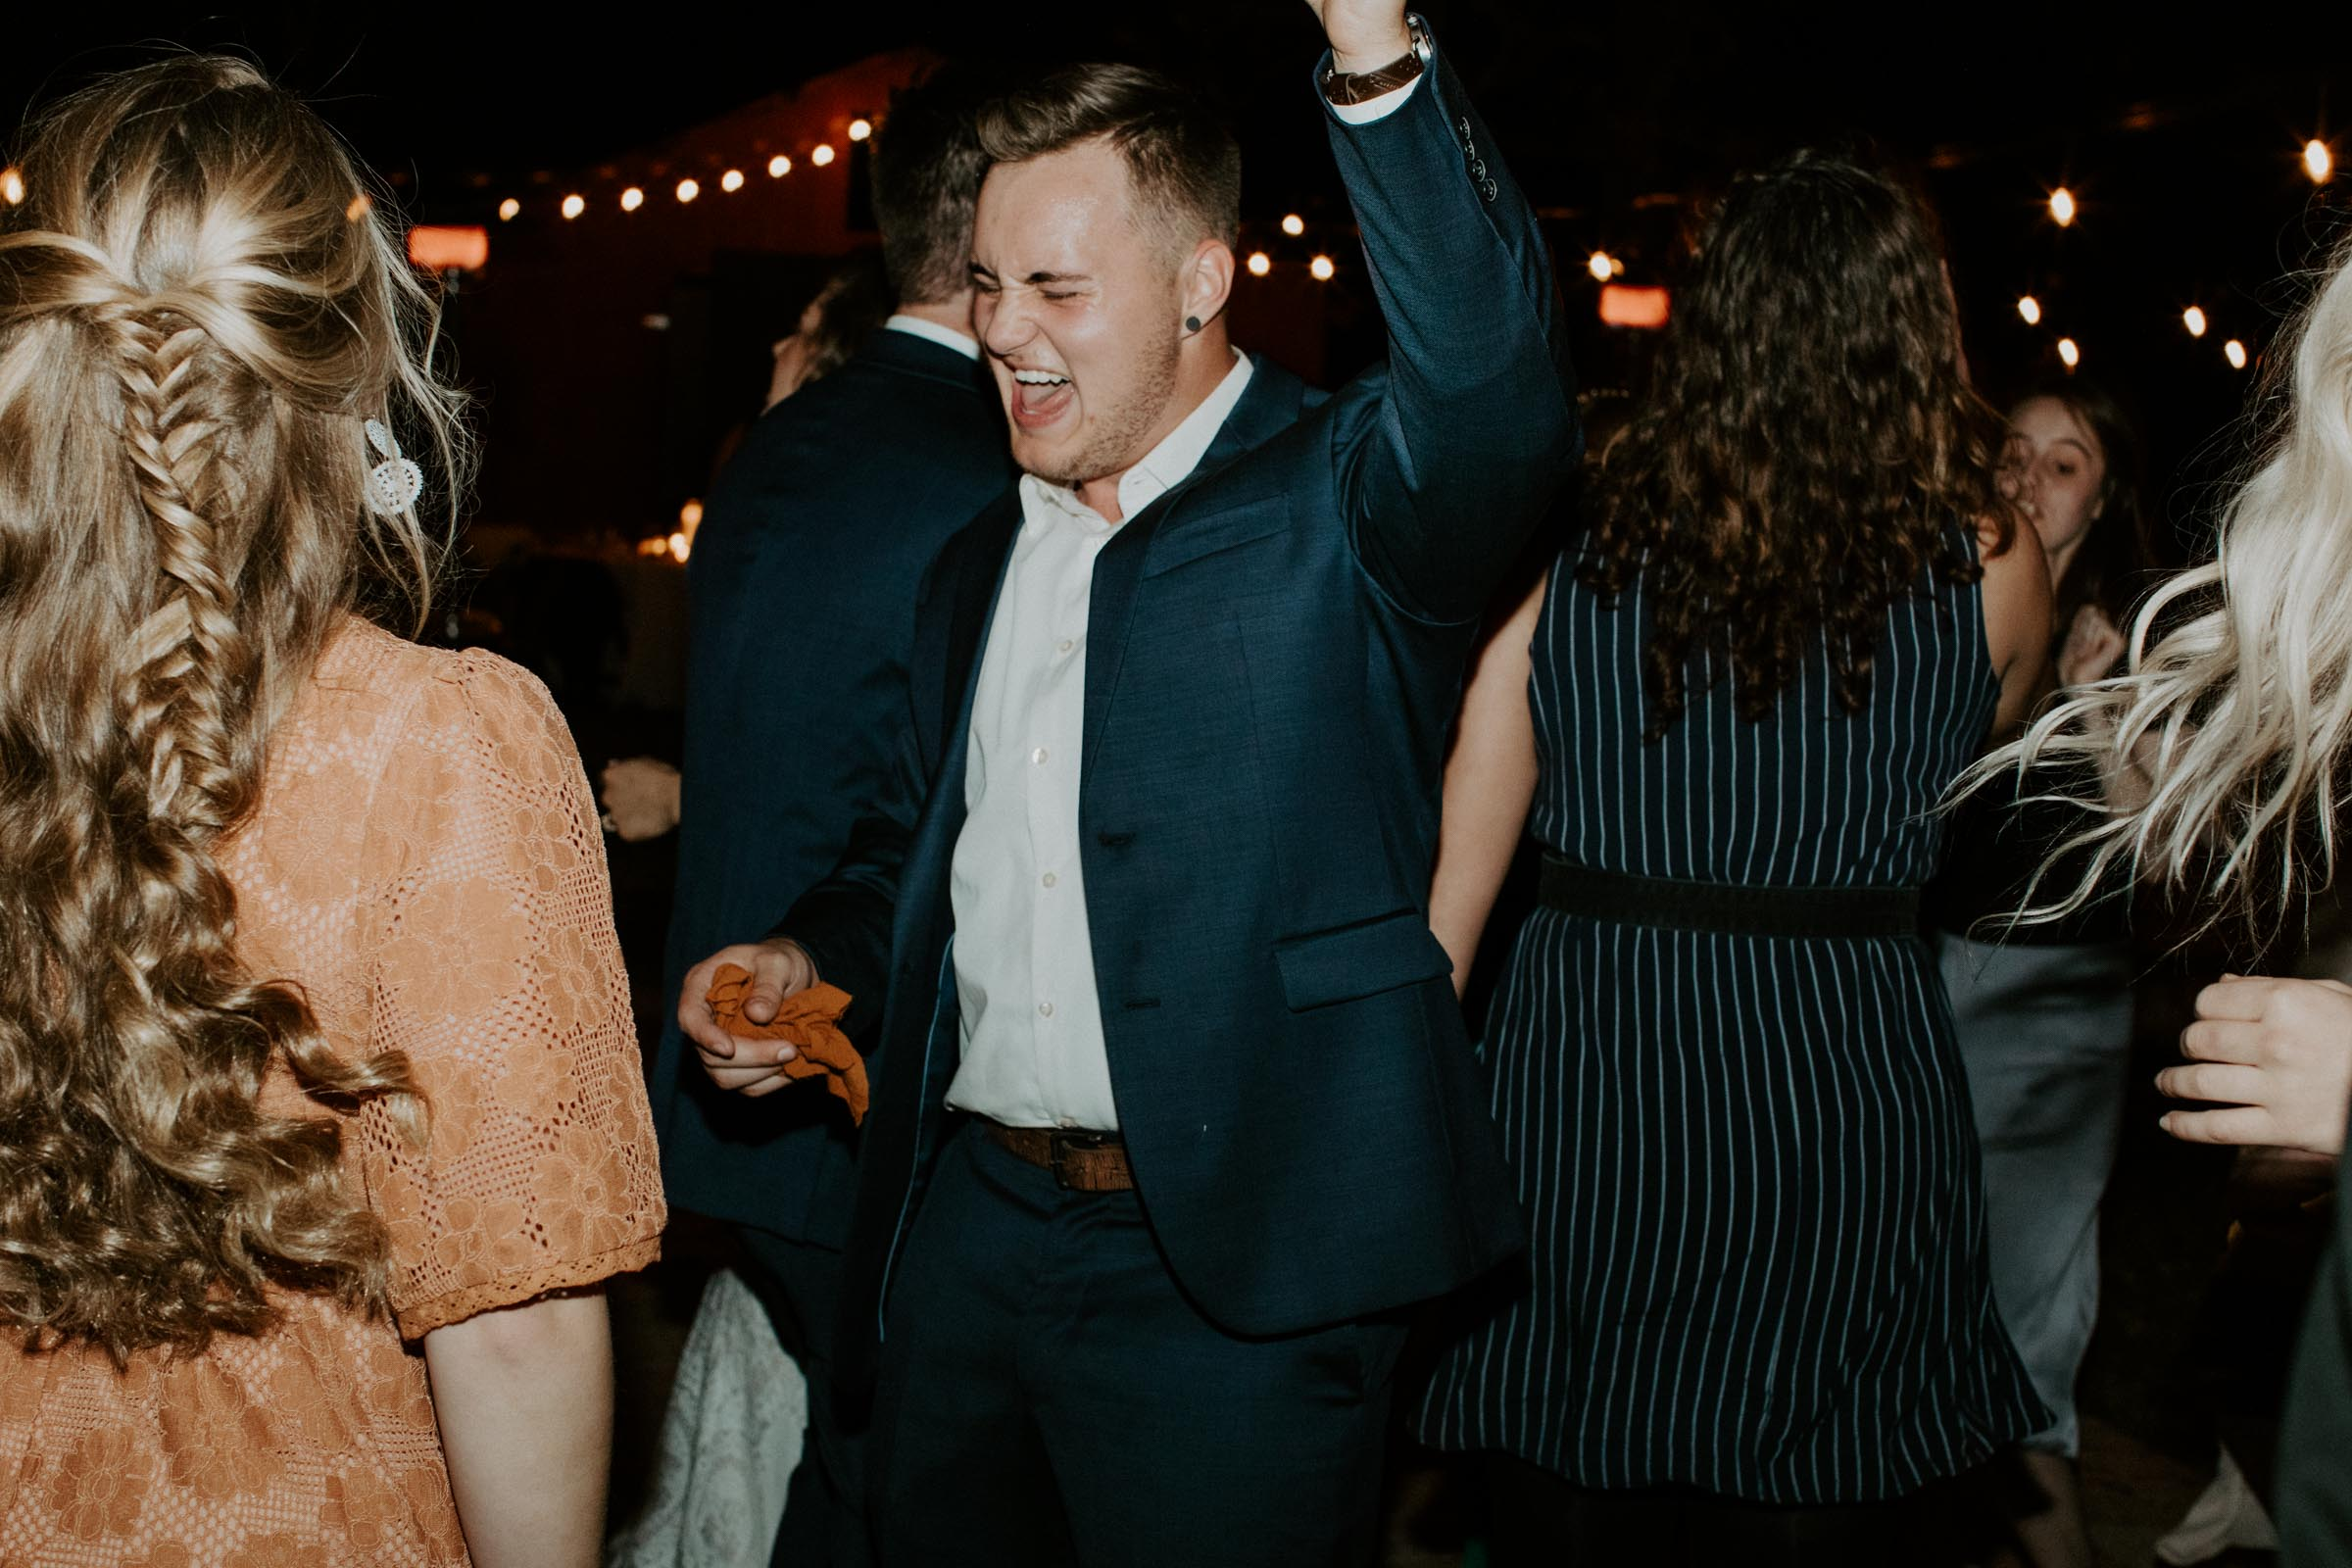 Groomsmen dancing at her wedding day